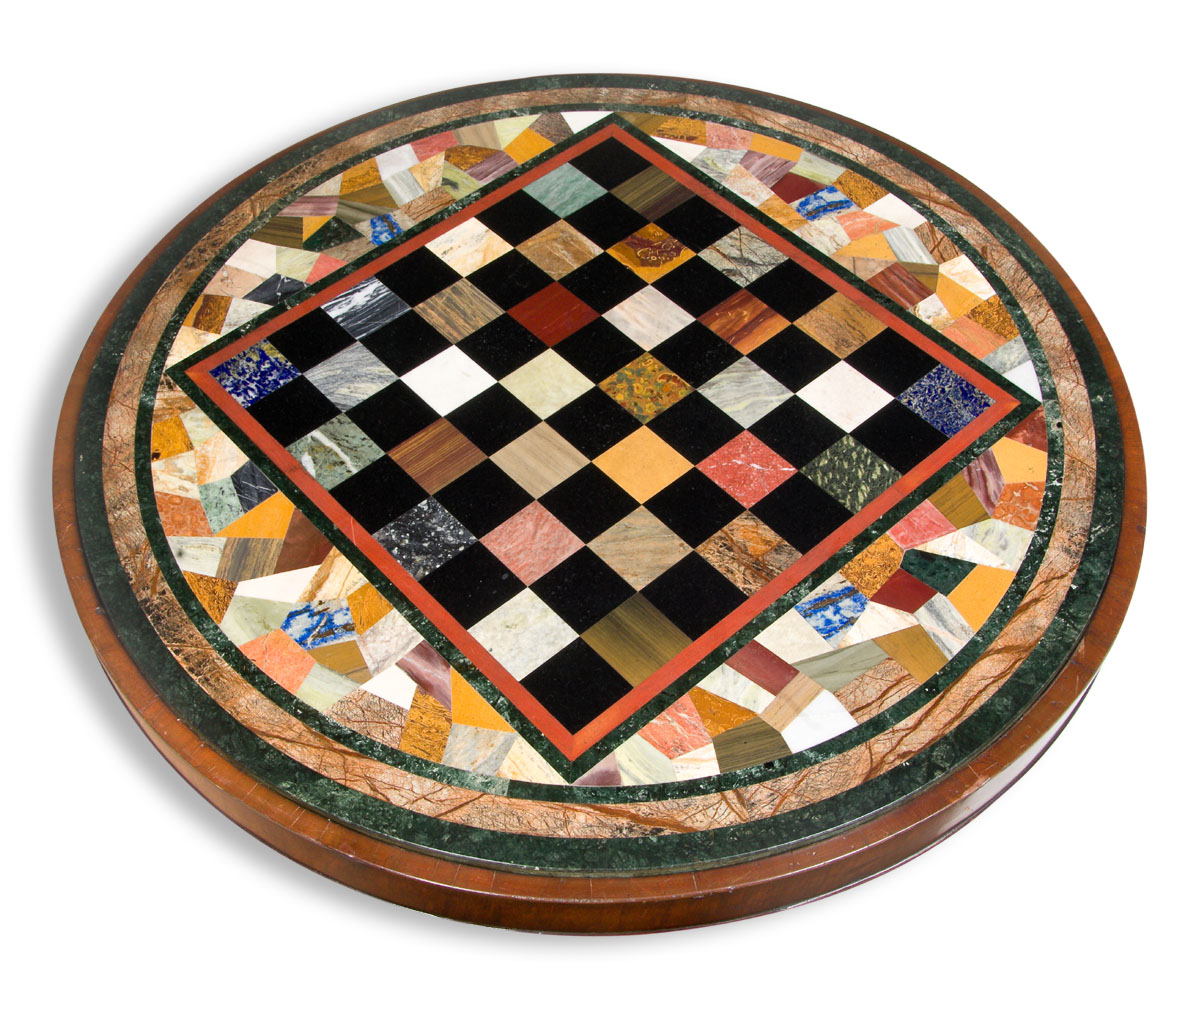 Marble Tile Chess Table circa 1890